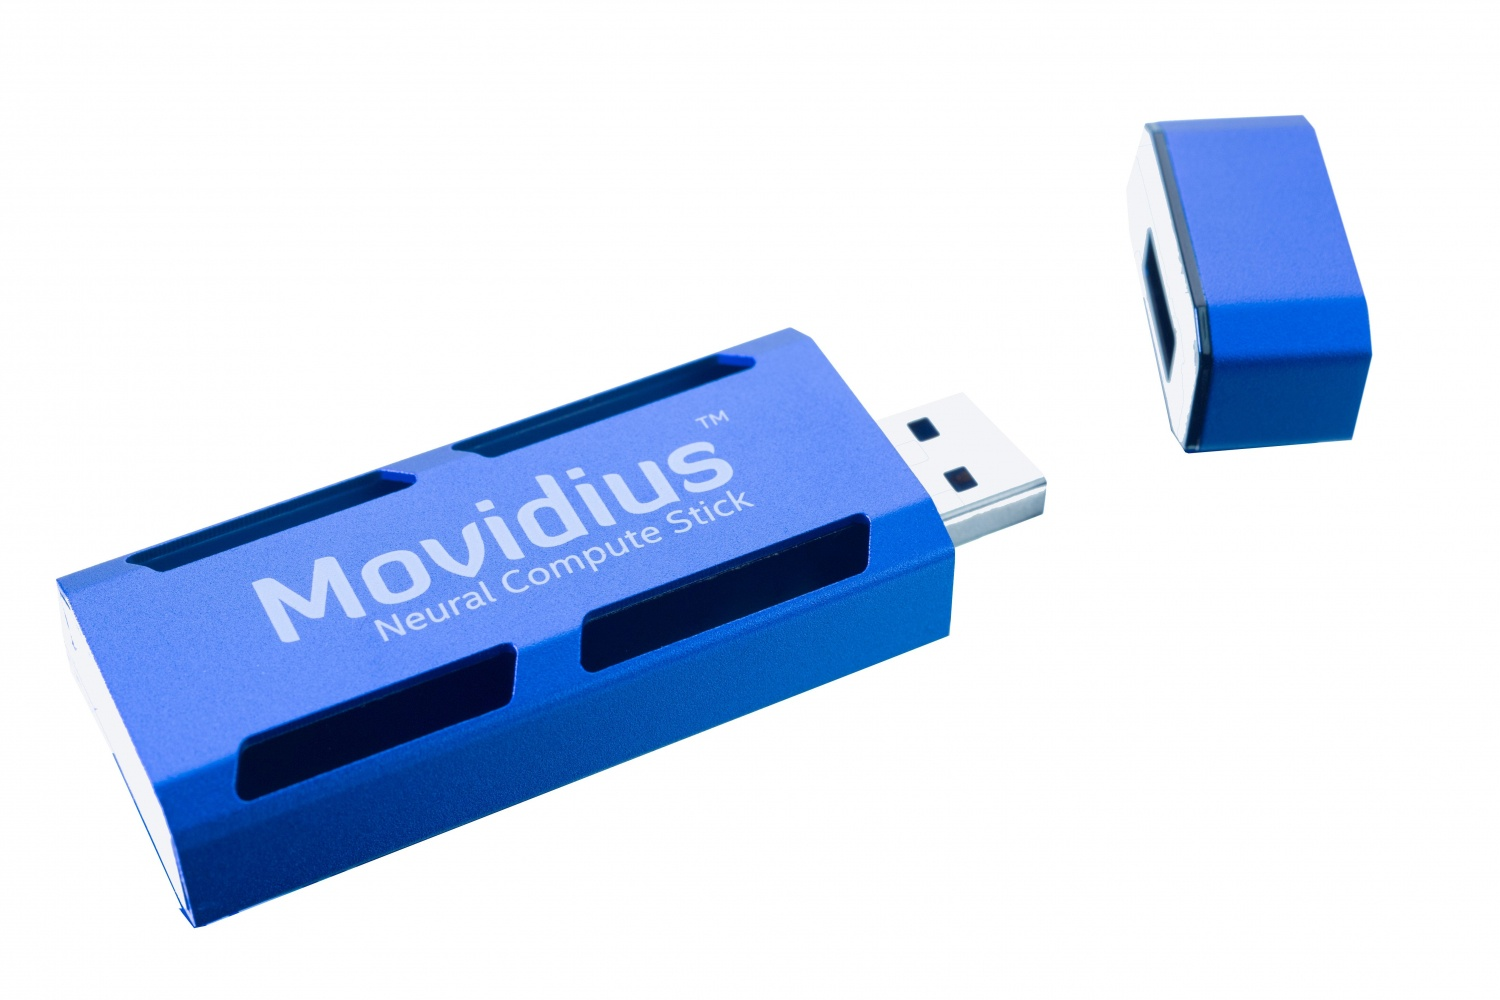 Movidius-USB-Stick-1500x1000_c